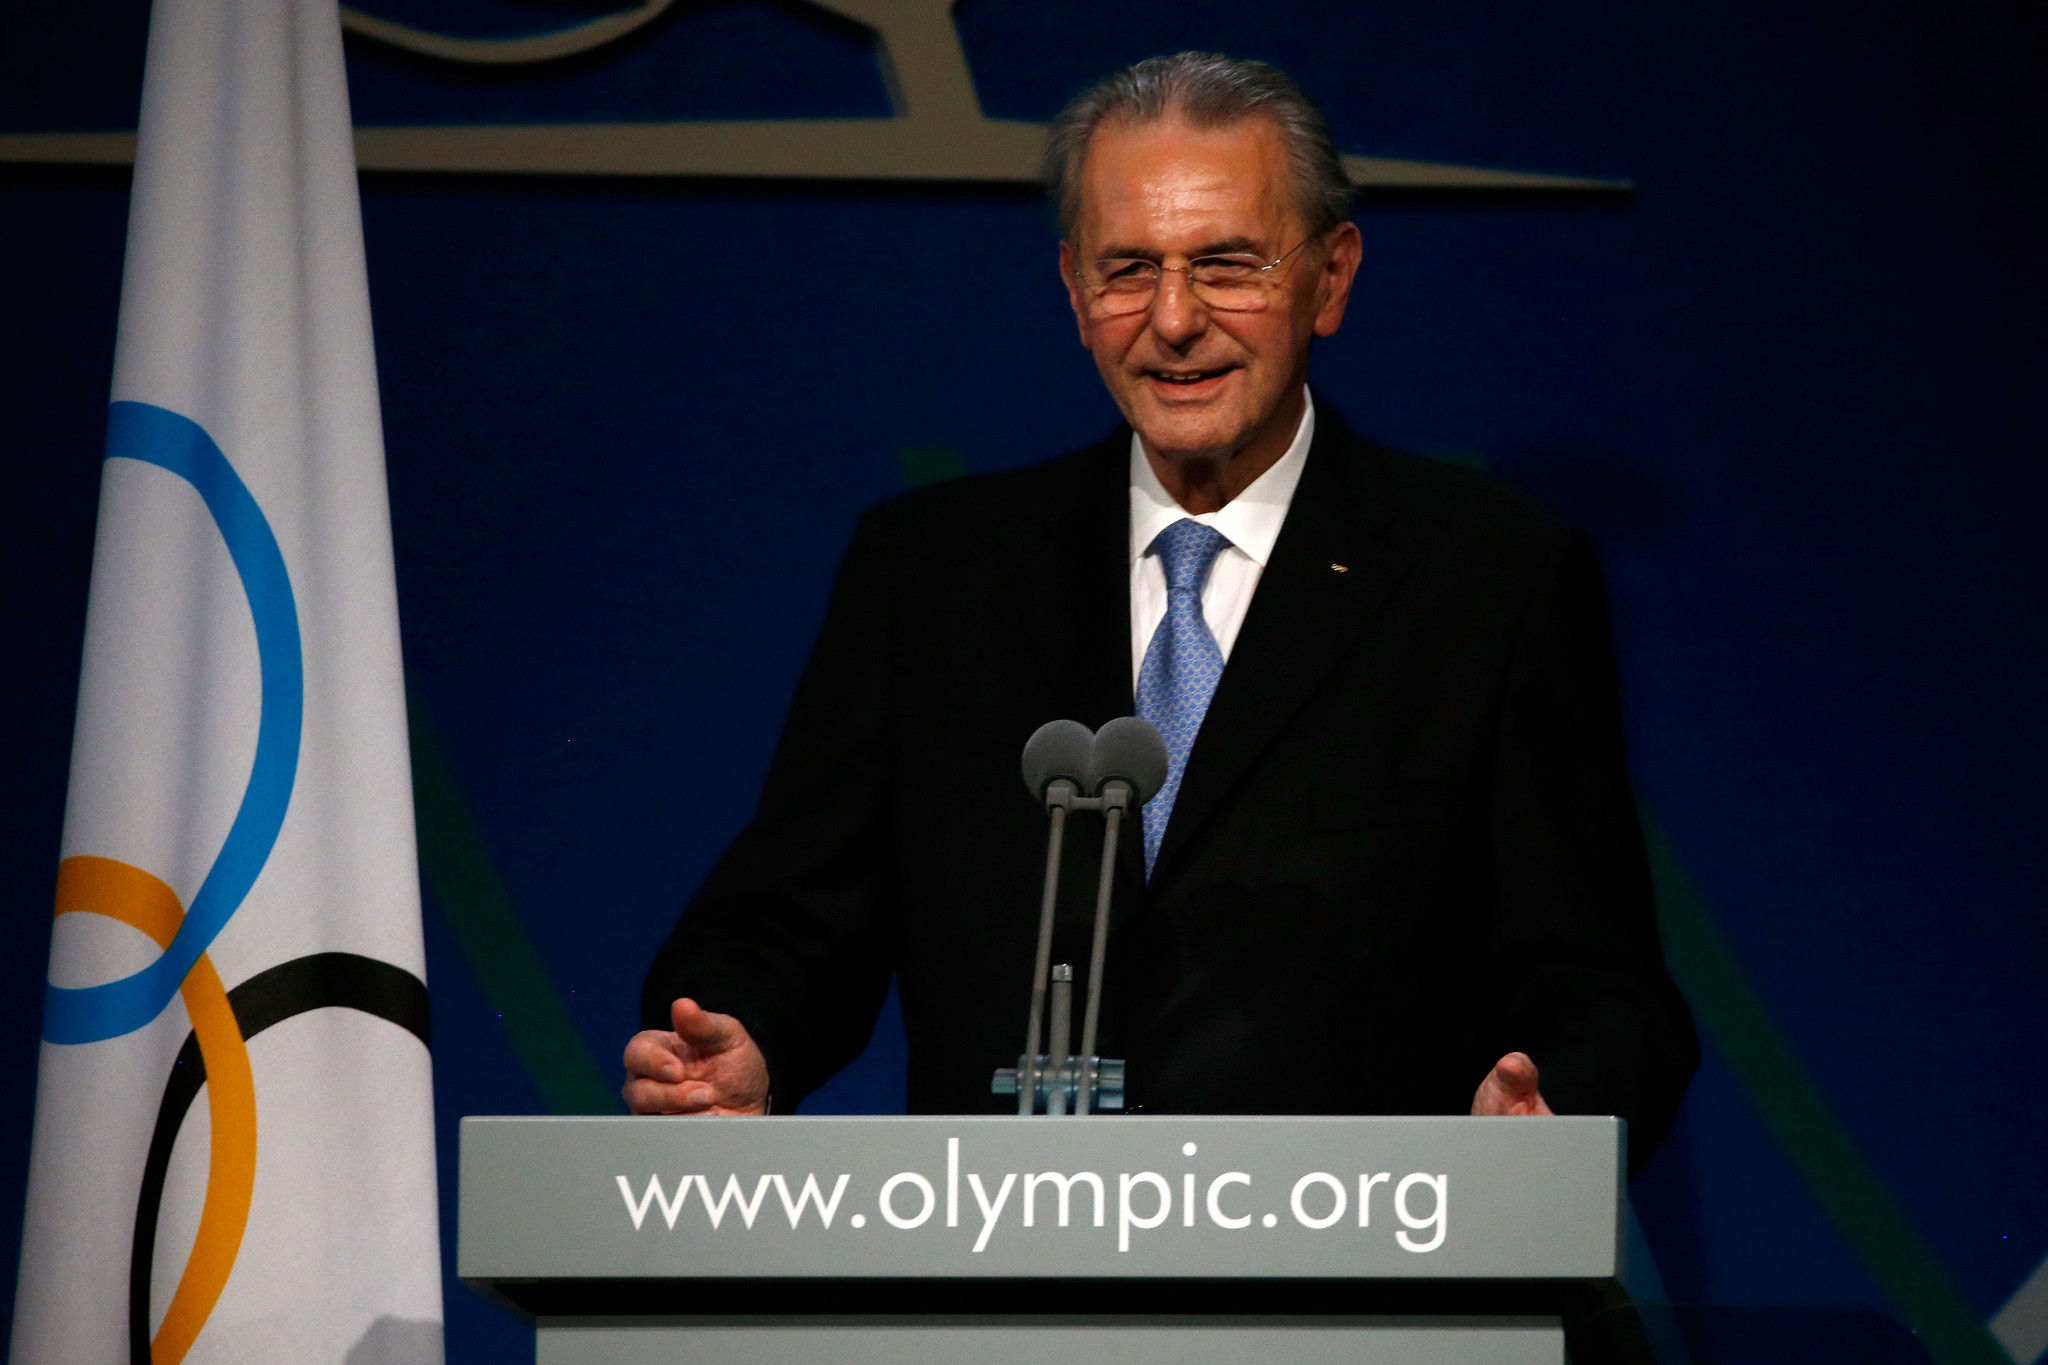 Former International Olympic Committee President Rogge dies aged 79